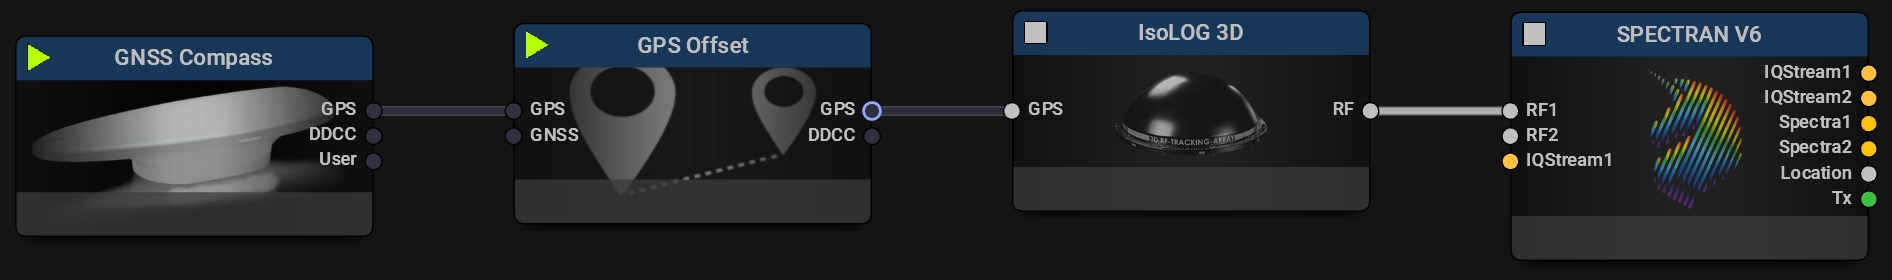 GPS Offset typical mission